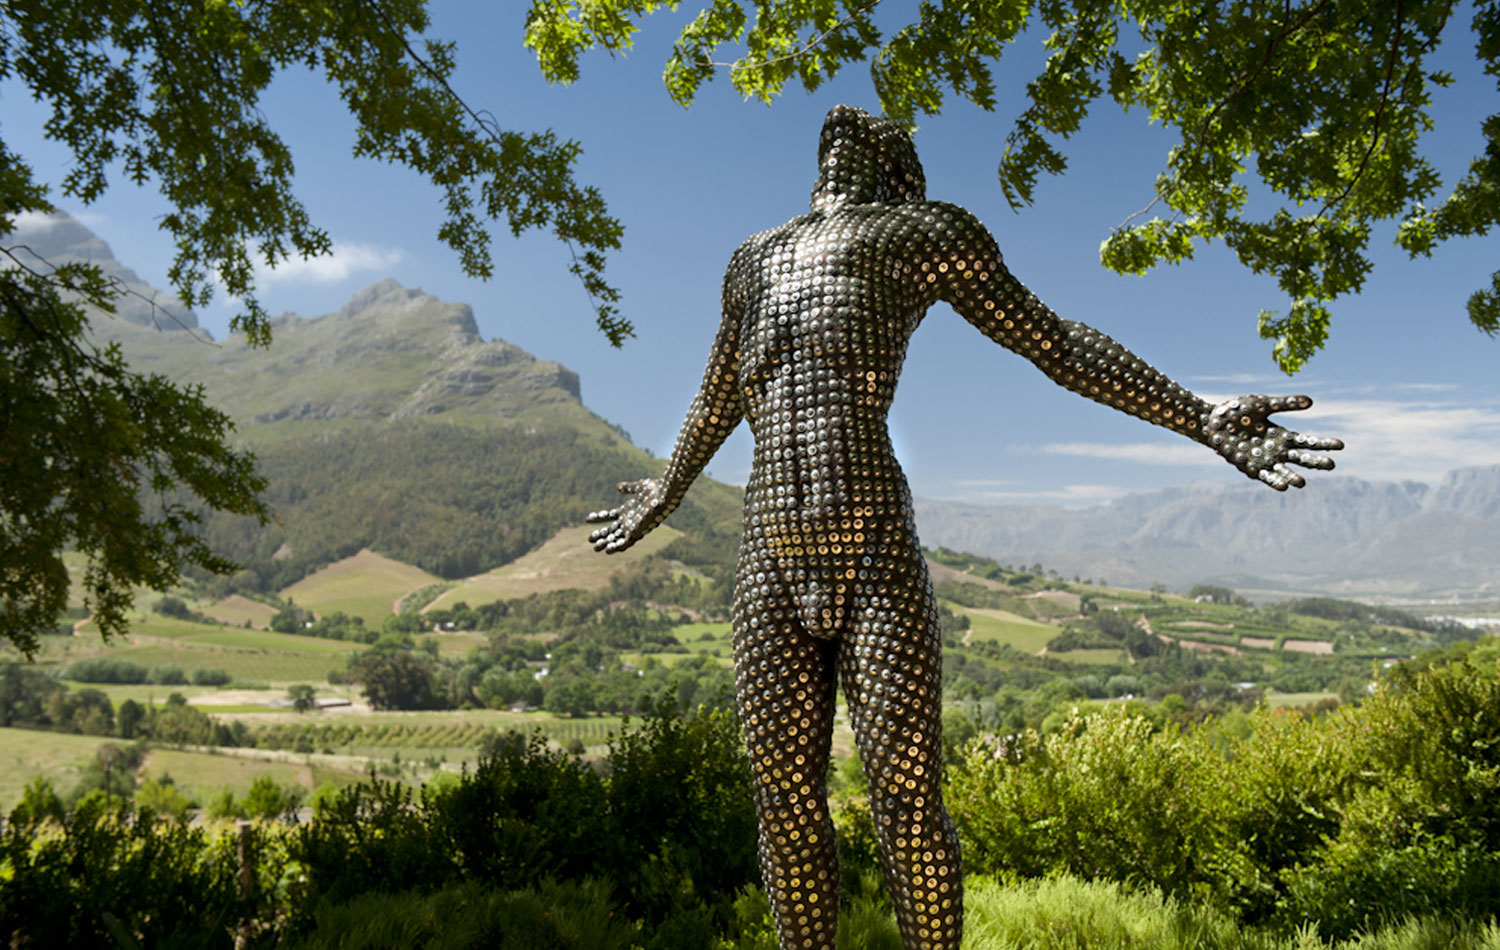 An Anton Smit statue of a human form in the gardens of Delaire Graff Estate